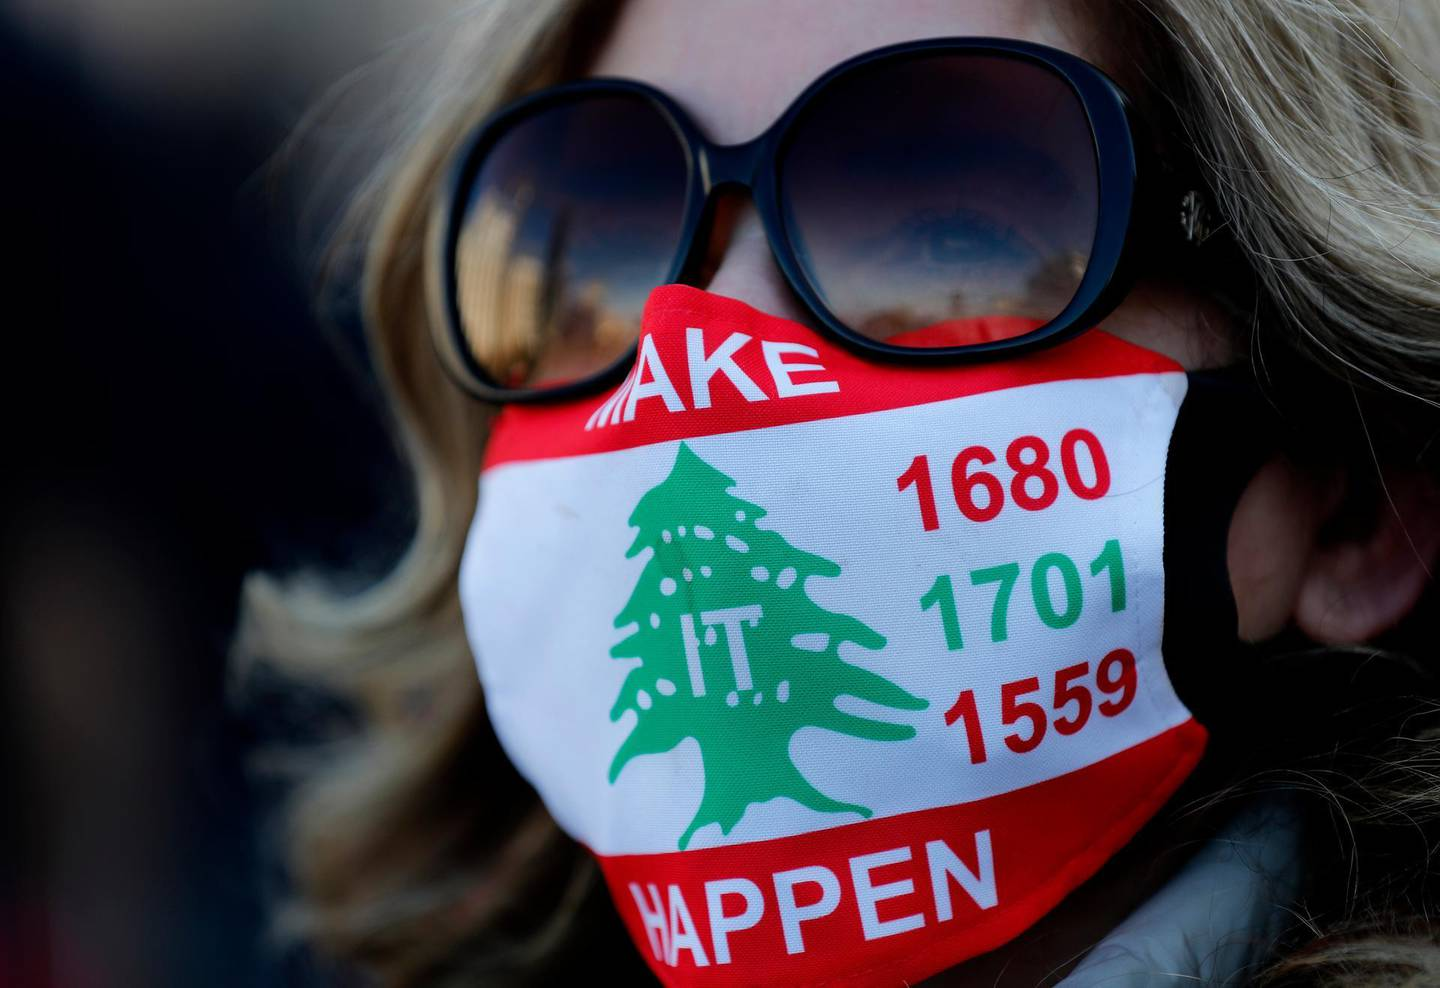 An activist wears a mask to protect from COVID-19, with the colors of the Lebanese flag and the U.N. Resolutions numbers that called for disarmament all Lebanese and non-Lebanese militias, during a sit-in to mark the 47th anniversary of the 1975-90 Civil War, in Beirut, Lebanon, Tuesday, April 13, 2021. The 15-year Civil War began on April 13, 1975 and killed more than 150,000 people. (AP Photo/Hussein Malla)